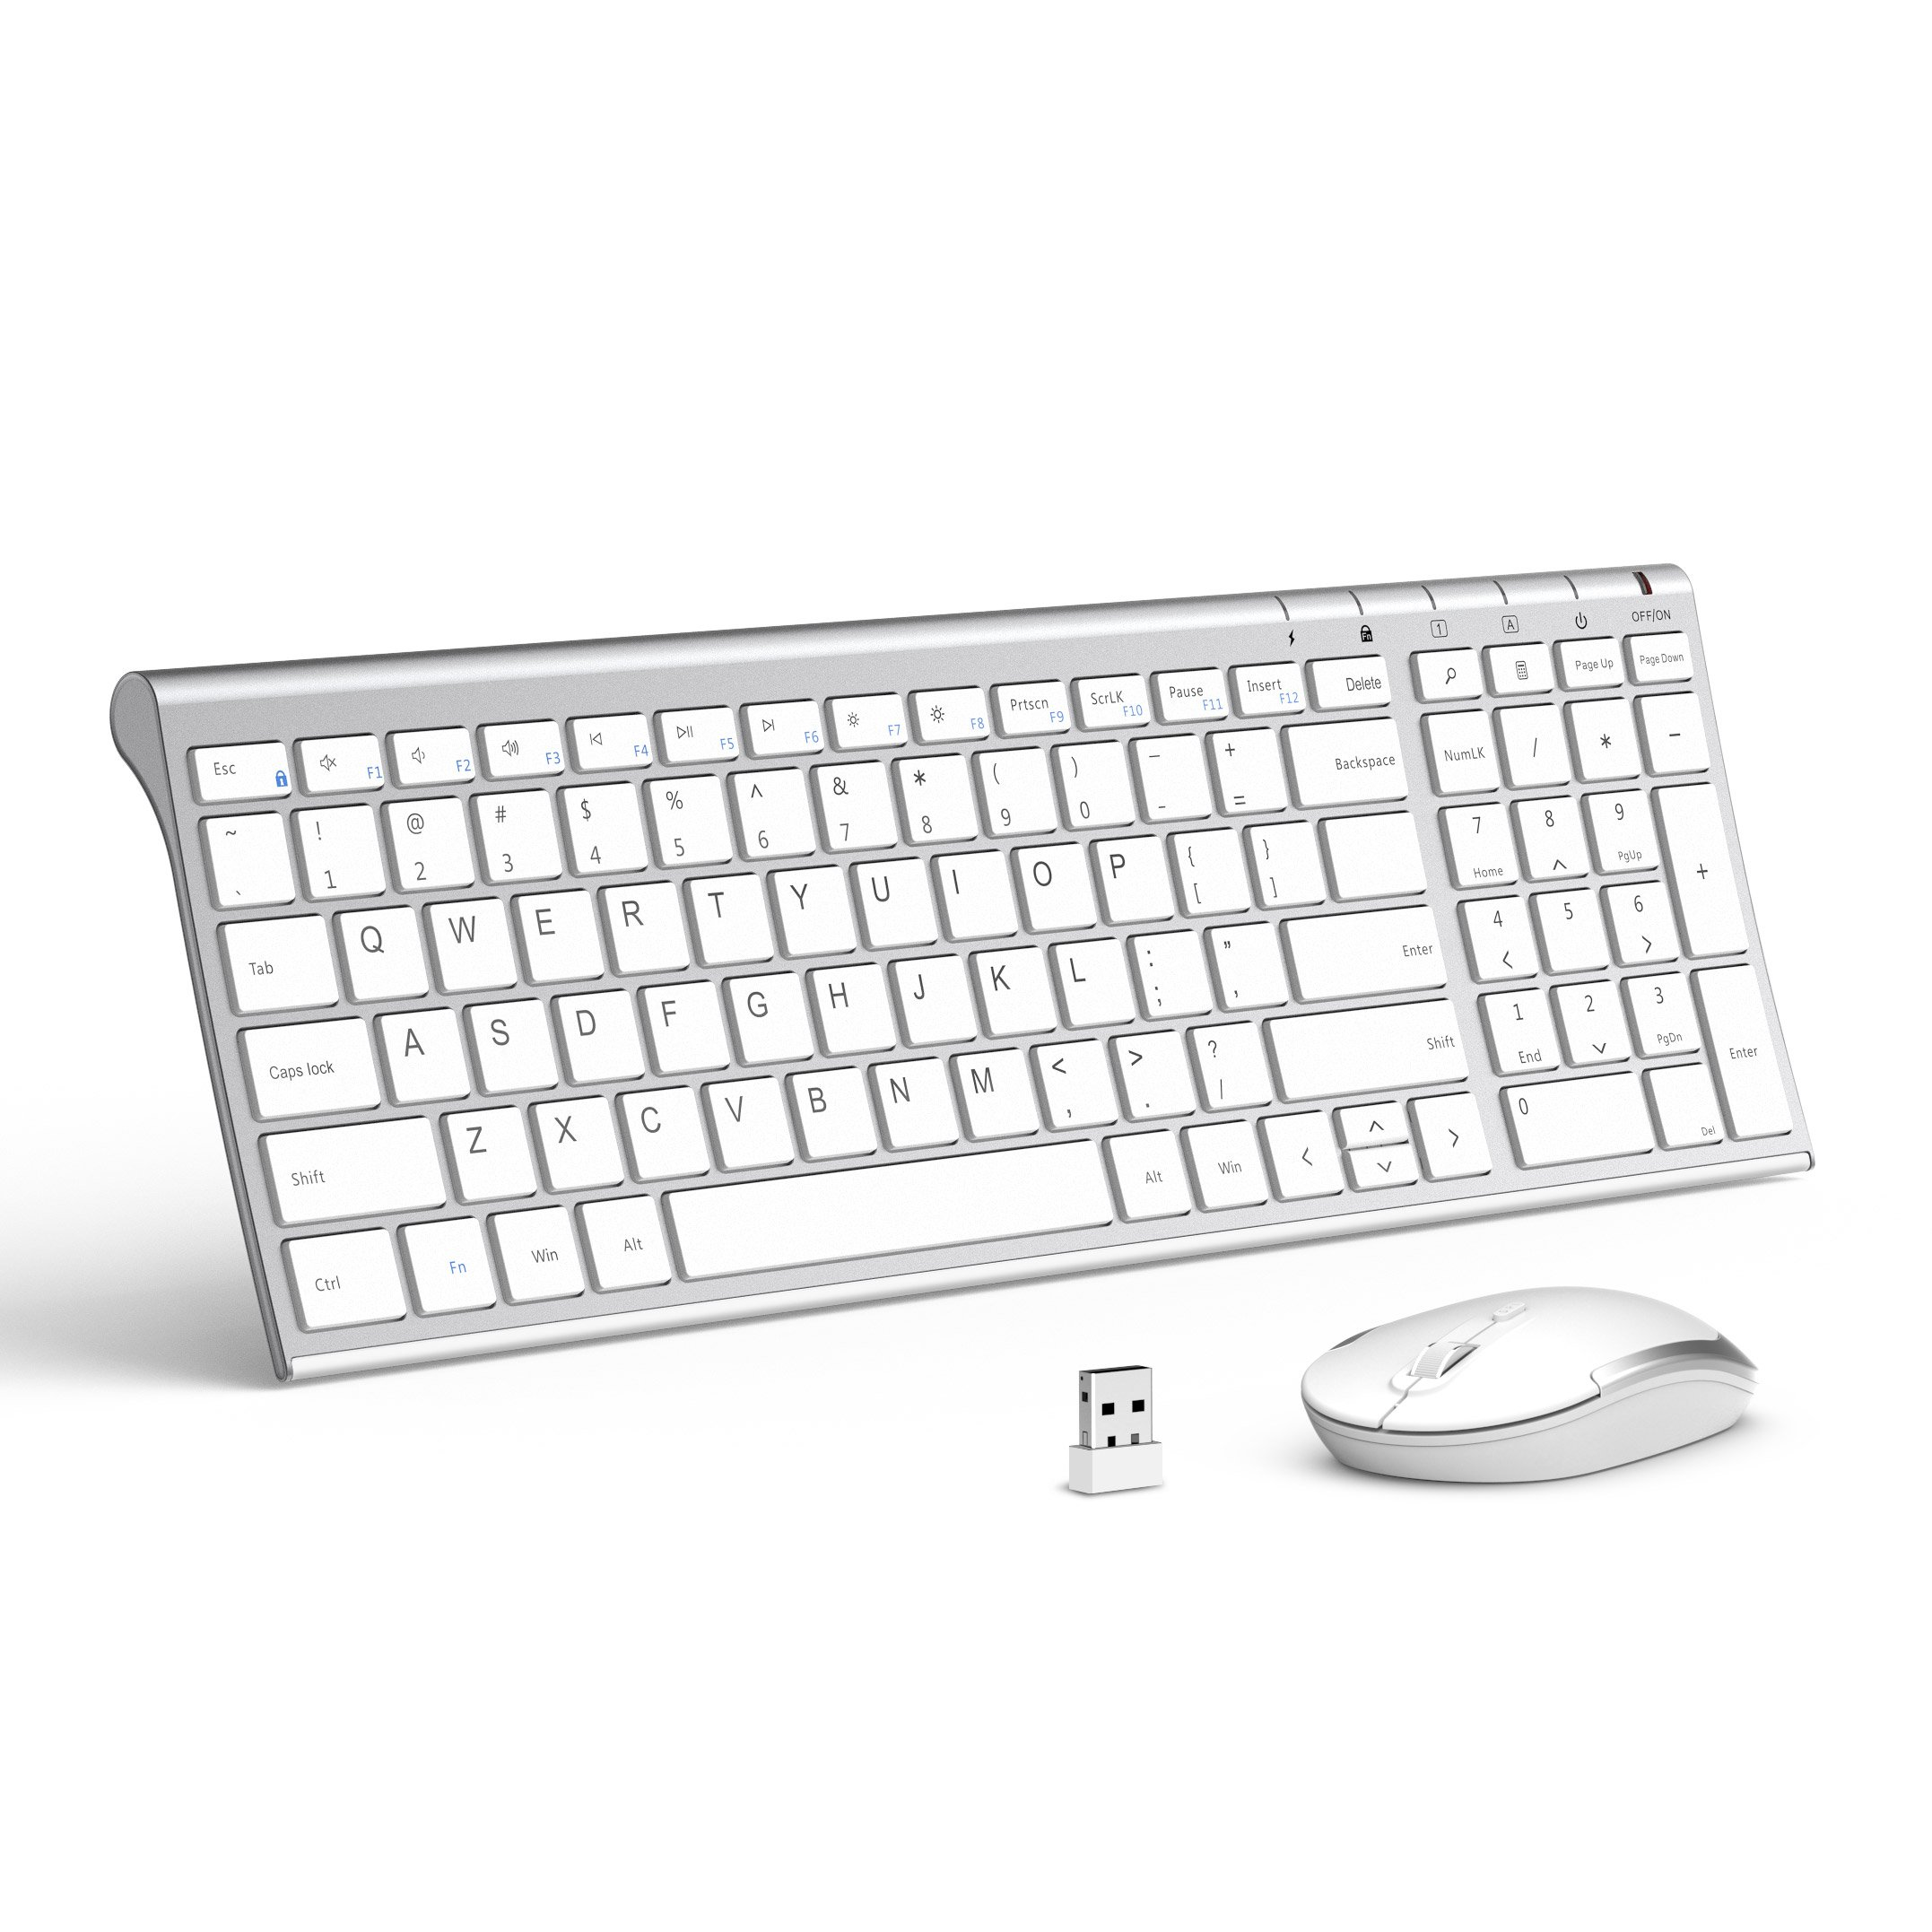 Wireless Keyboard Mouse, Jelly Comb 2.4GHz Ultra Slim Compact Full Size Rechargeable Wireless Keyboard and Mouse Combo for Laptop, Notebook, PC, Desktop, Computer, Windows OS - White and Silver